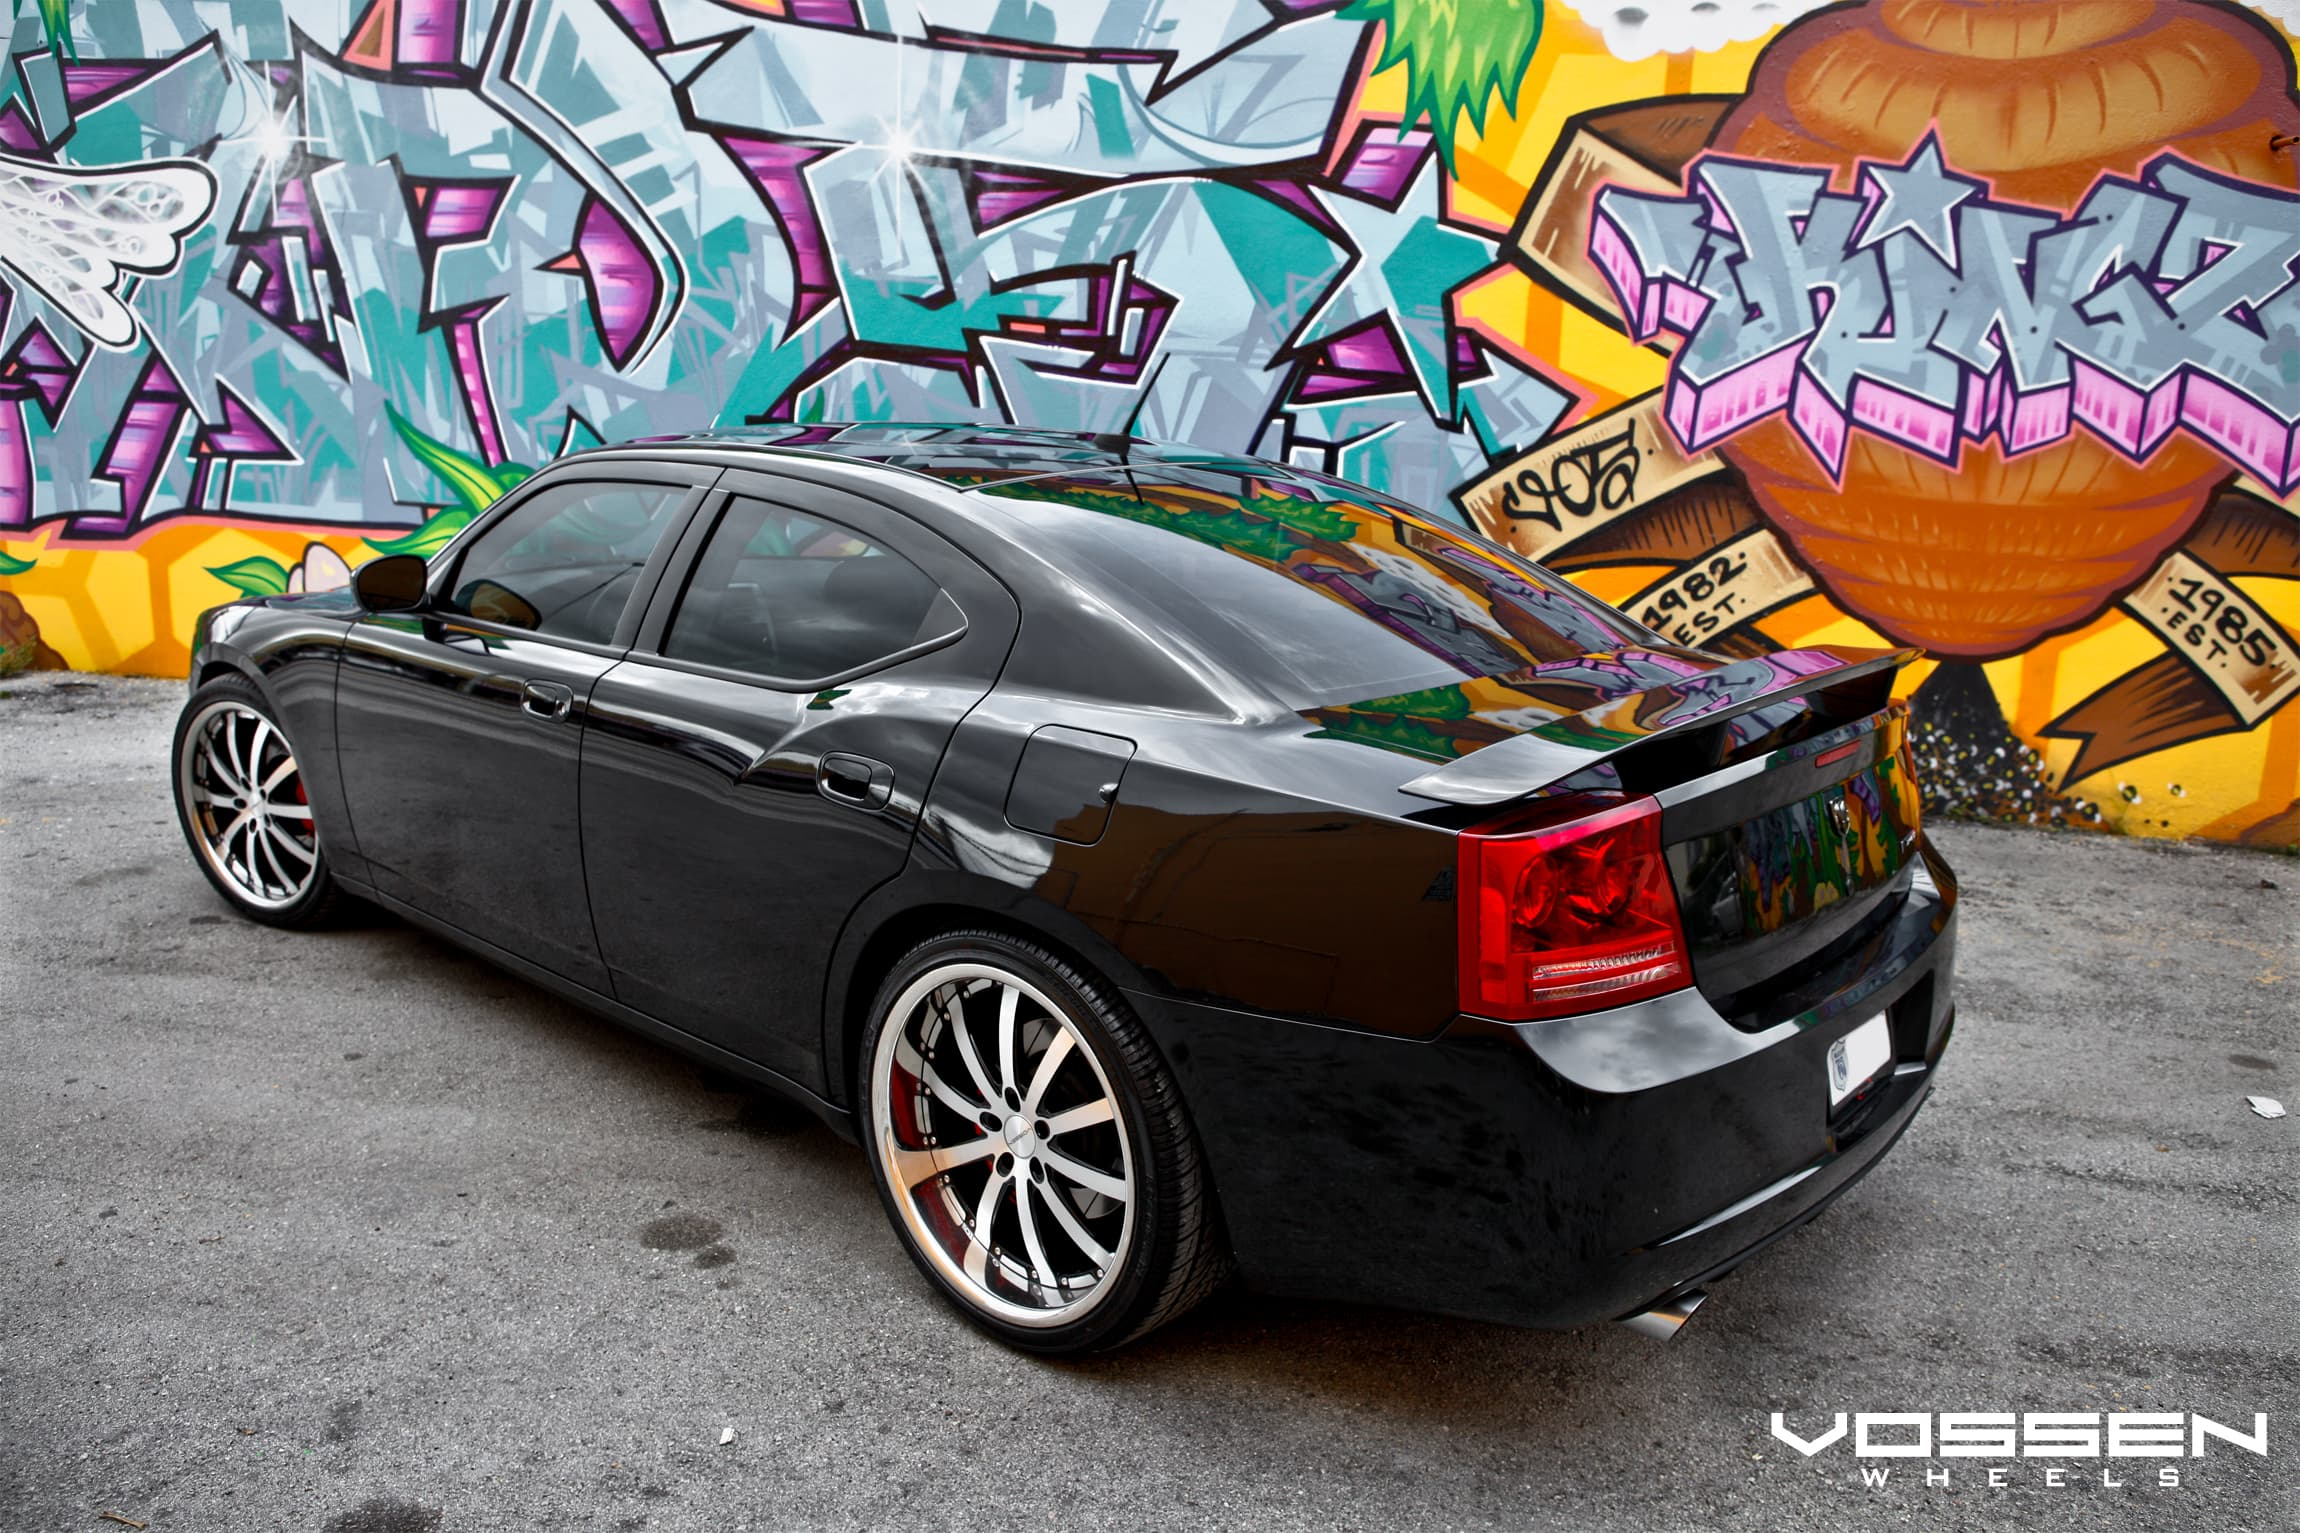 Dodge Charger Wallpapers Hd Black Vossen Wheels Graffiti